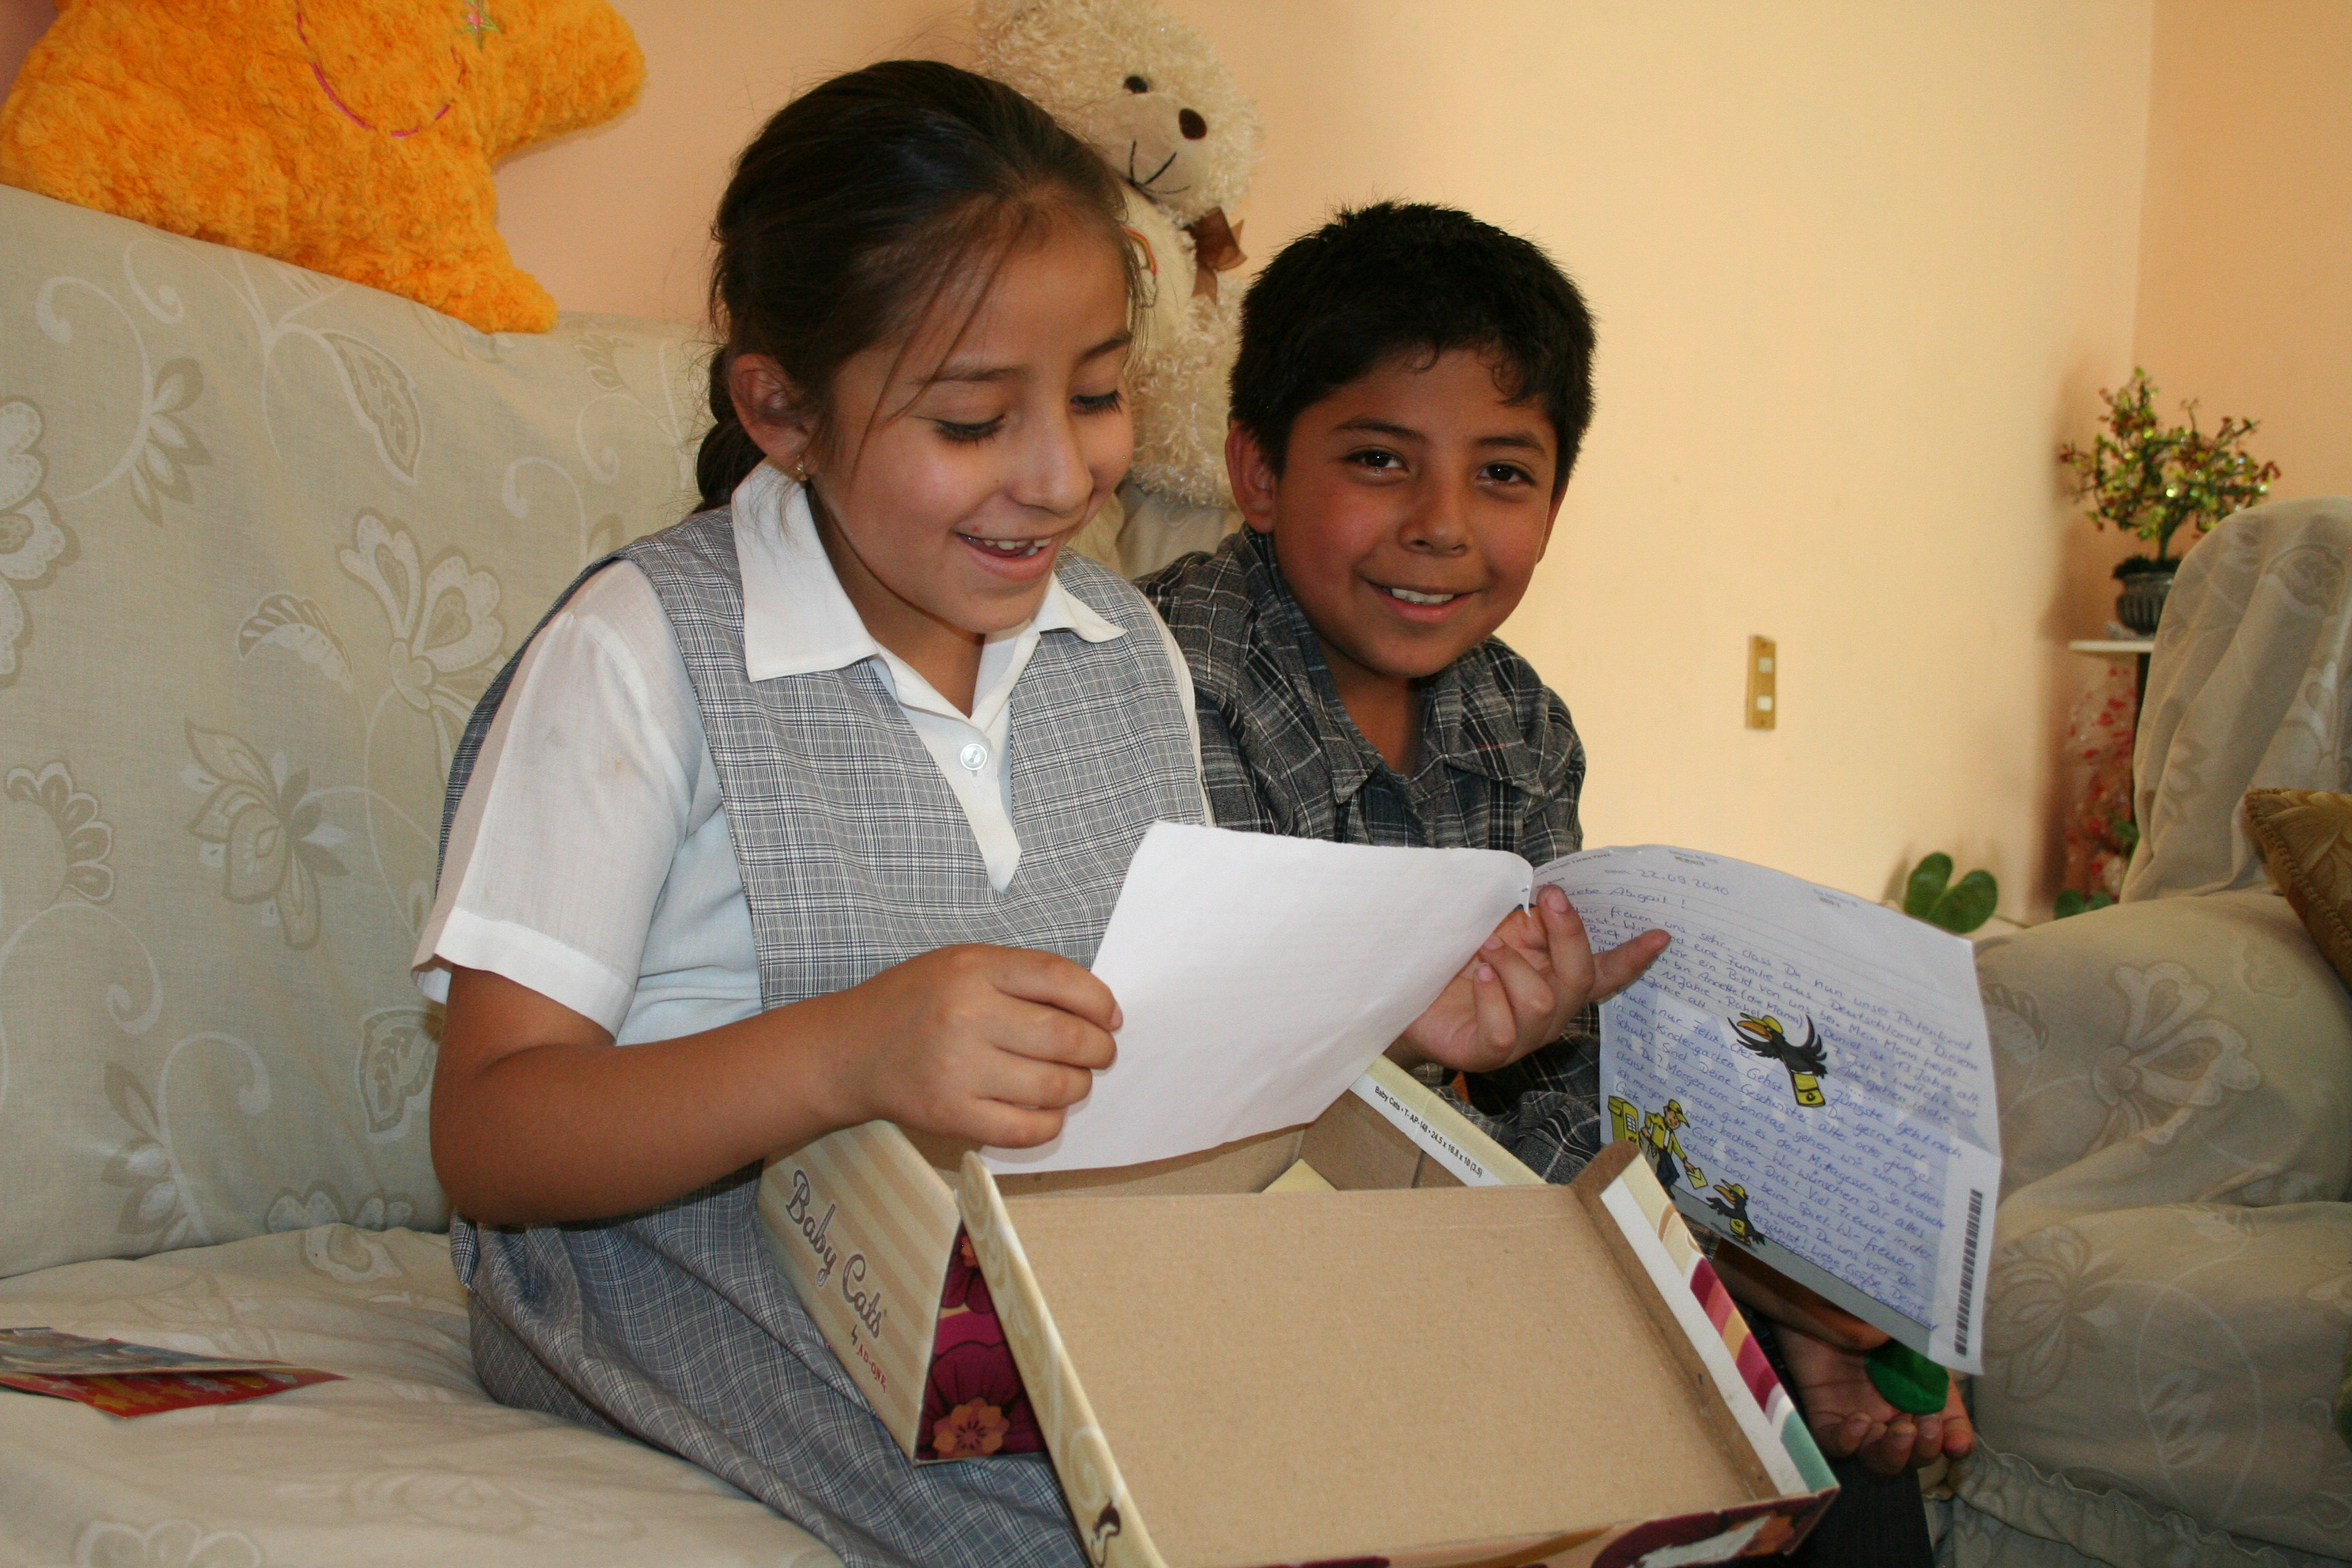 Belinda smiles looking down at a letter with her brother